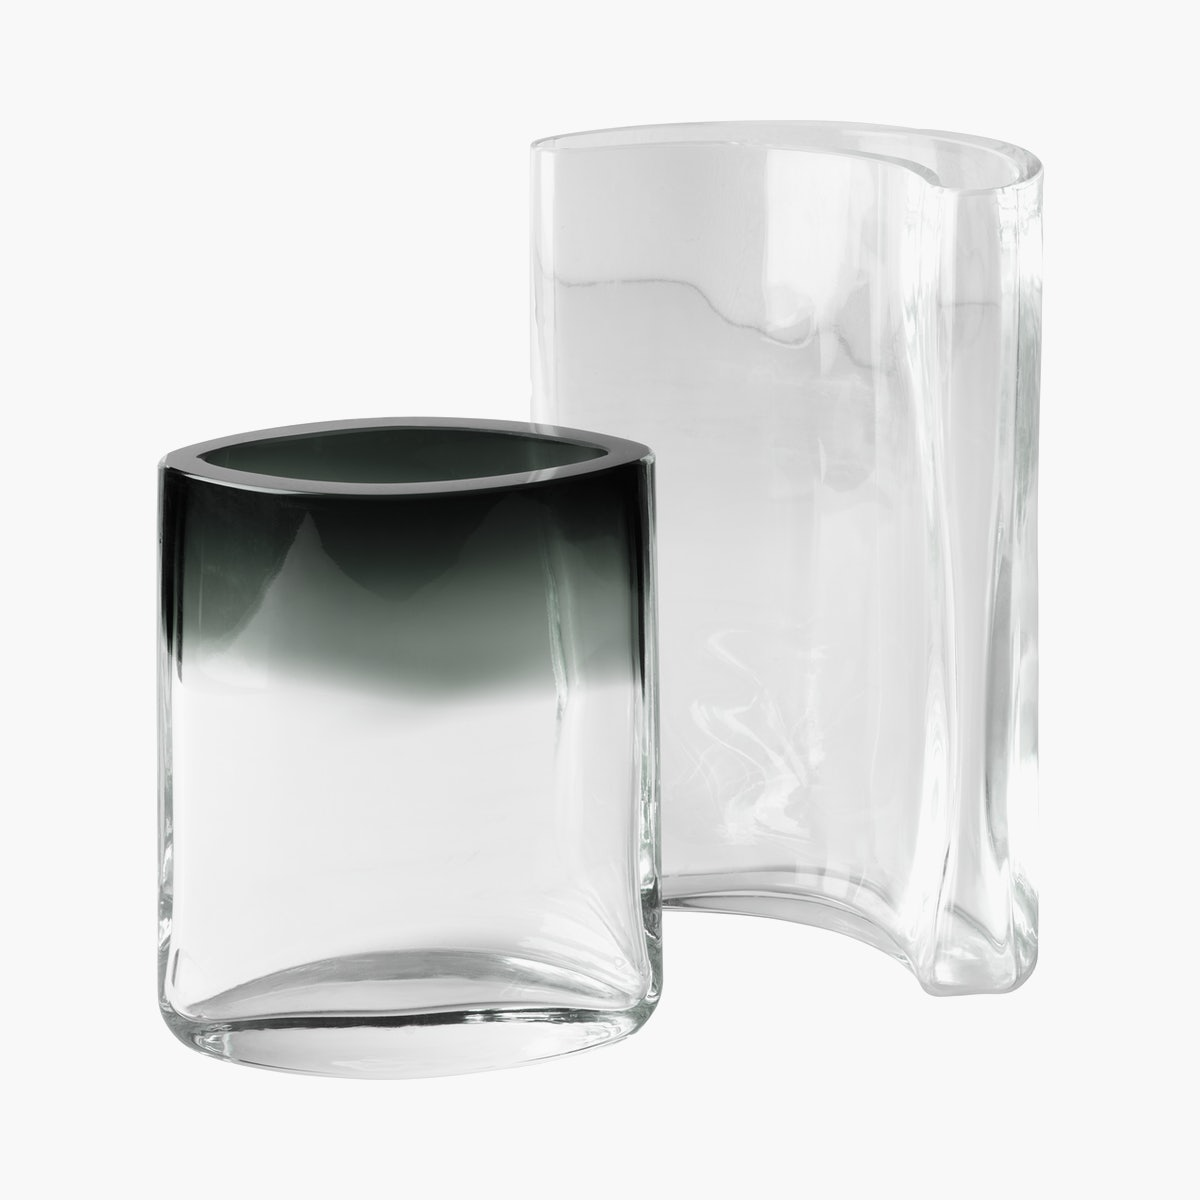 Moon Eye Vase Set